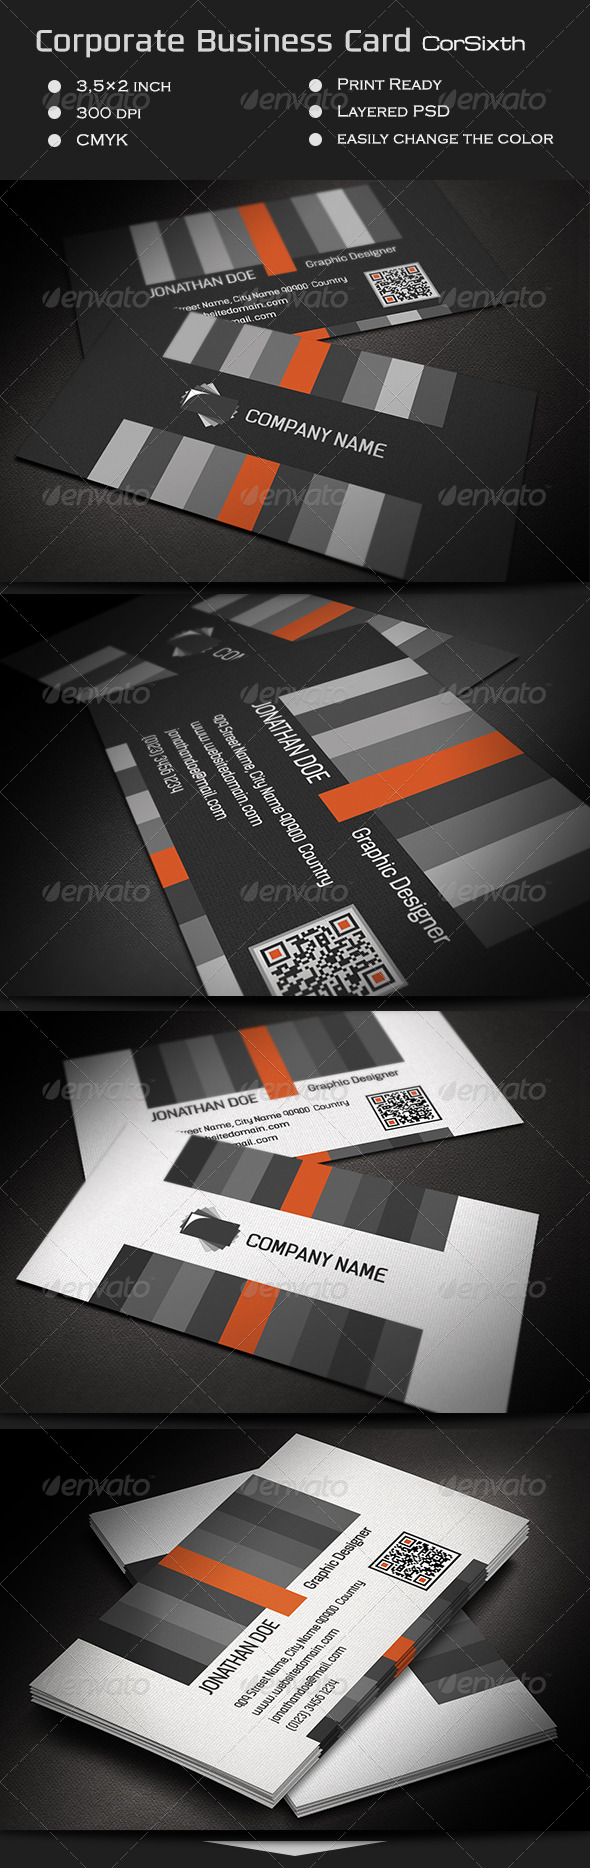 GraphicRiver Corporate Business Card CorSixth 7161013